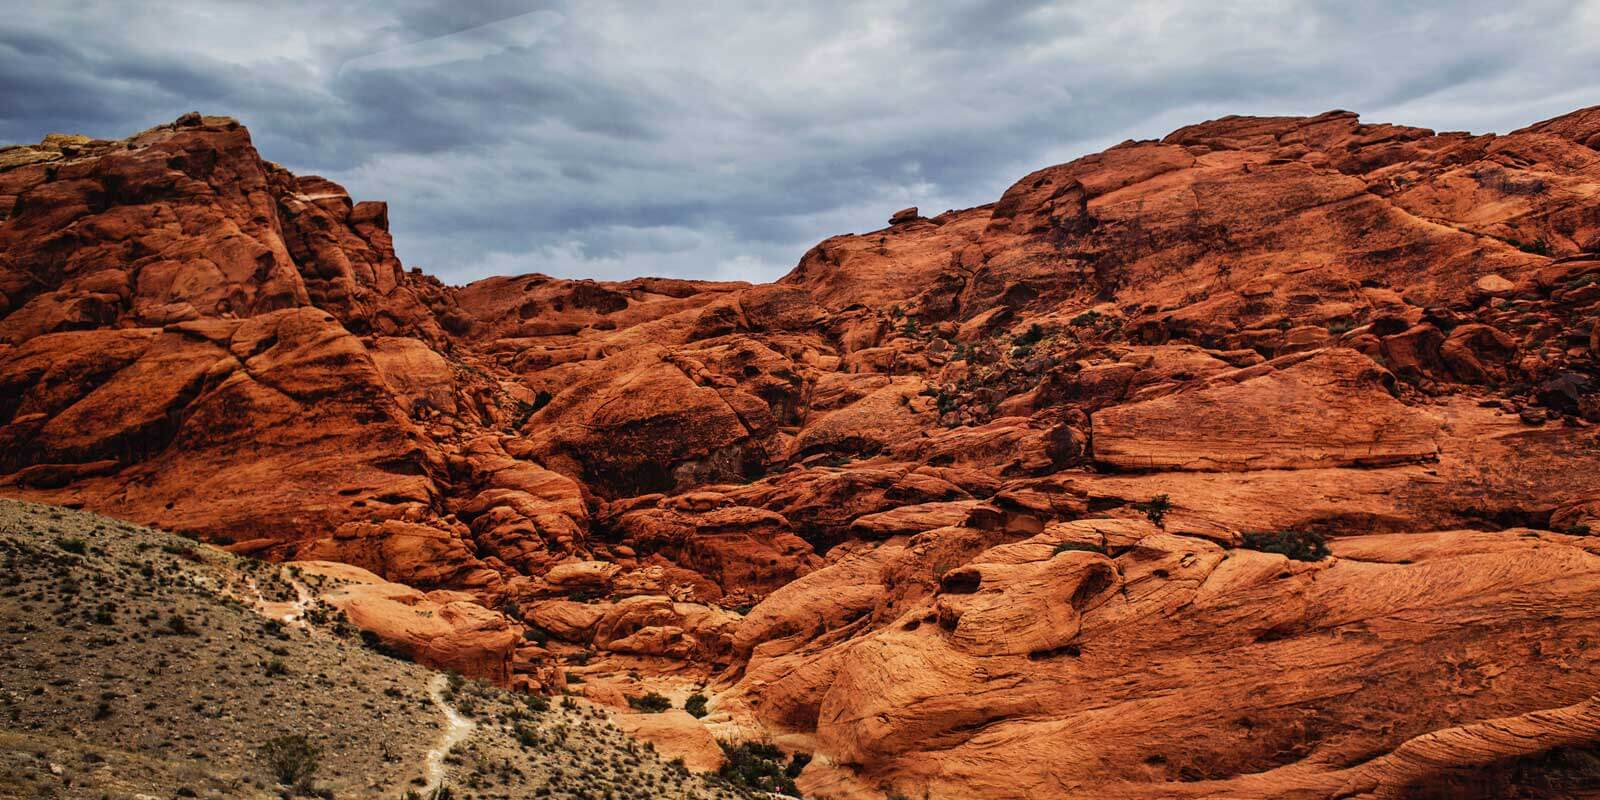 Landscape photo of rusty red rock formations set against a cloudy sky.